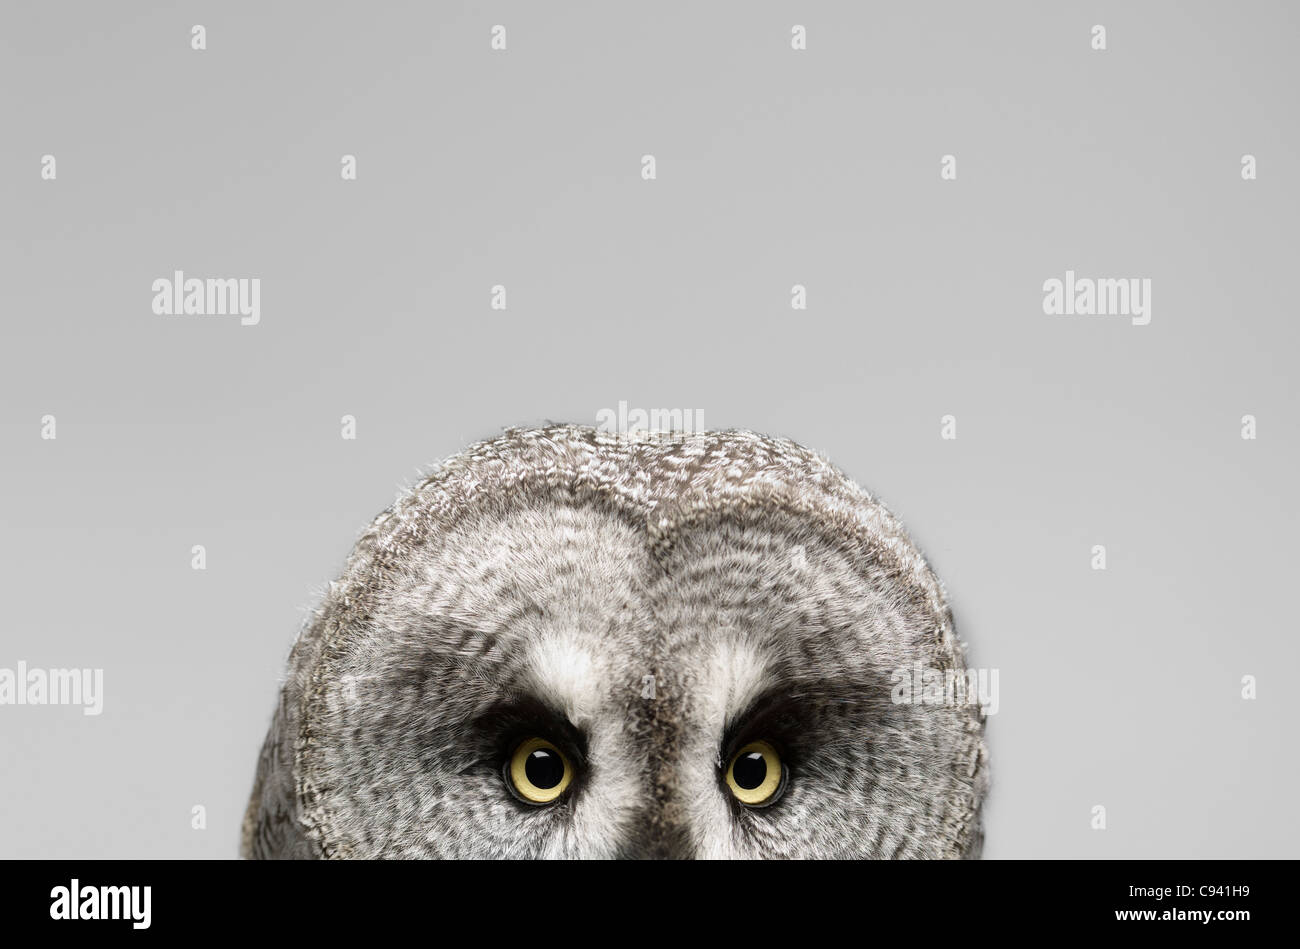 Great Grey Owl on a light gray background - Stock Image